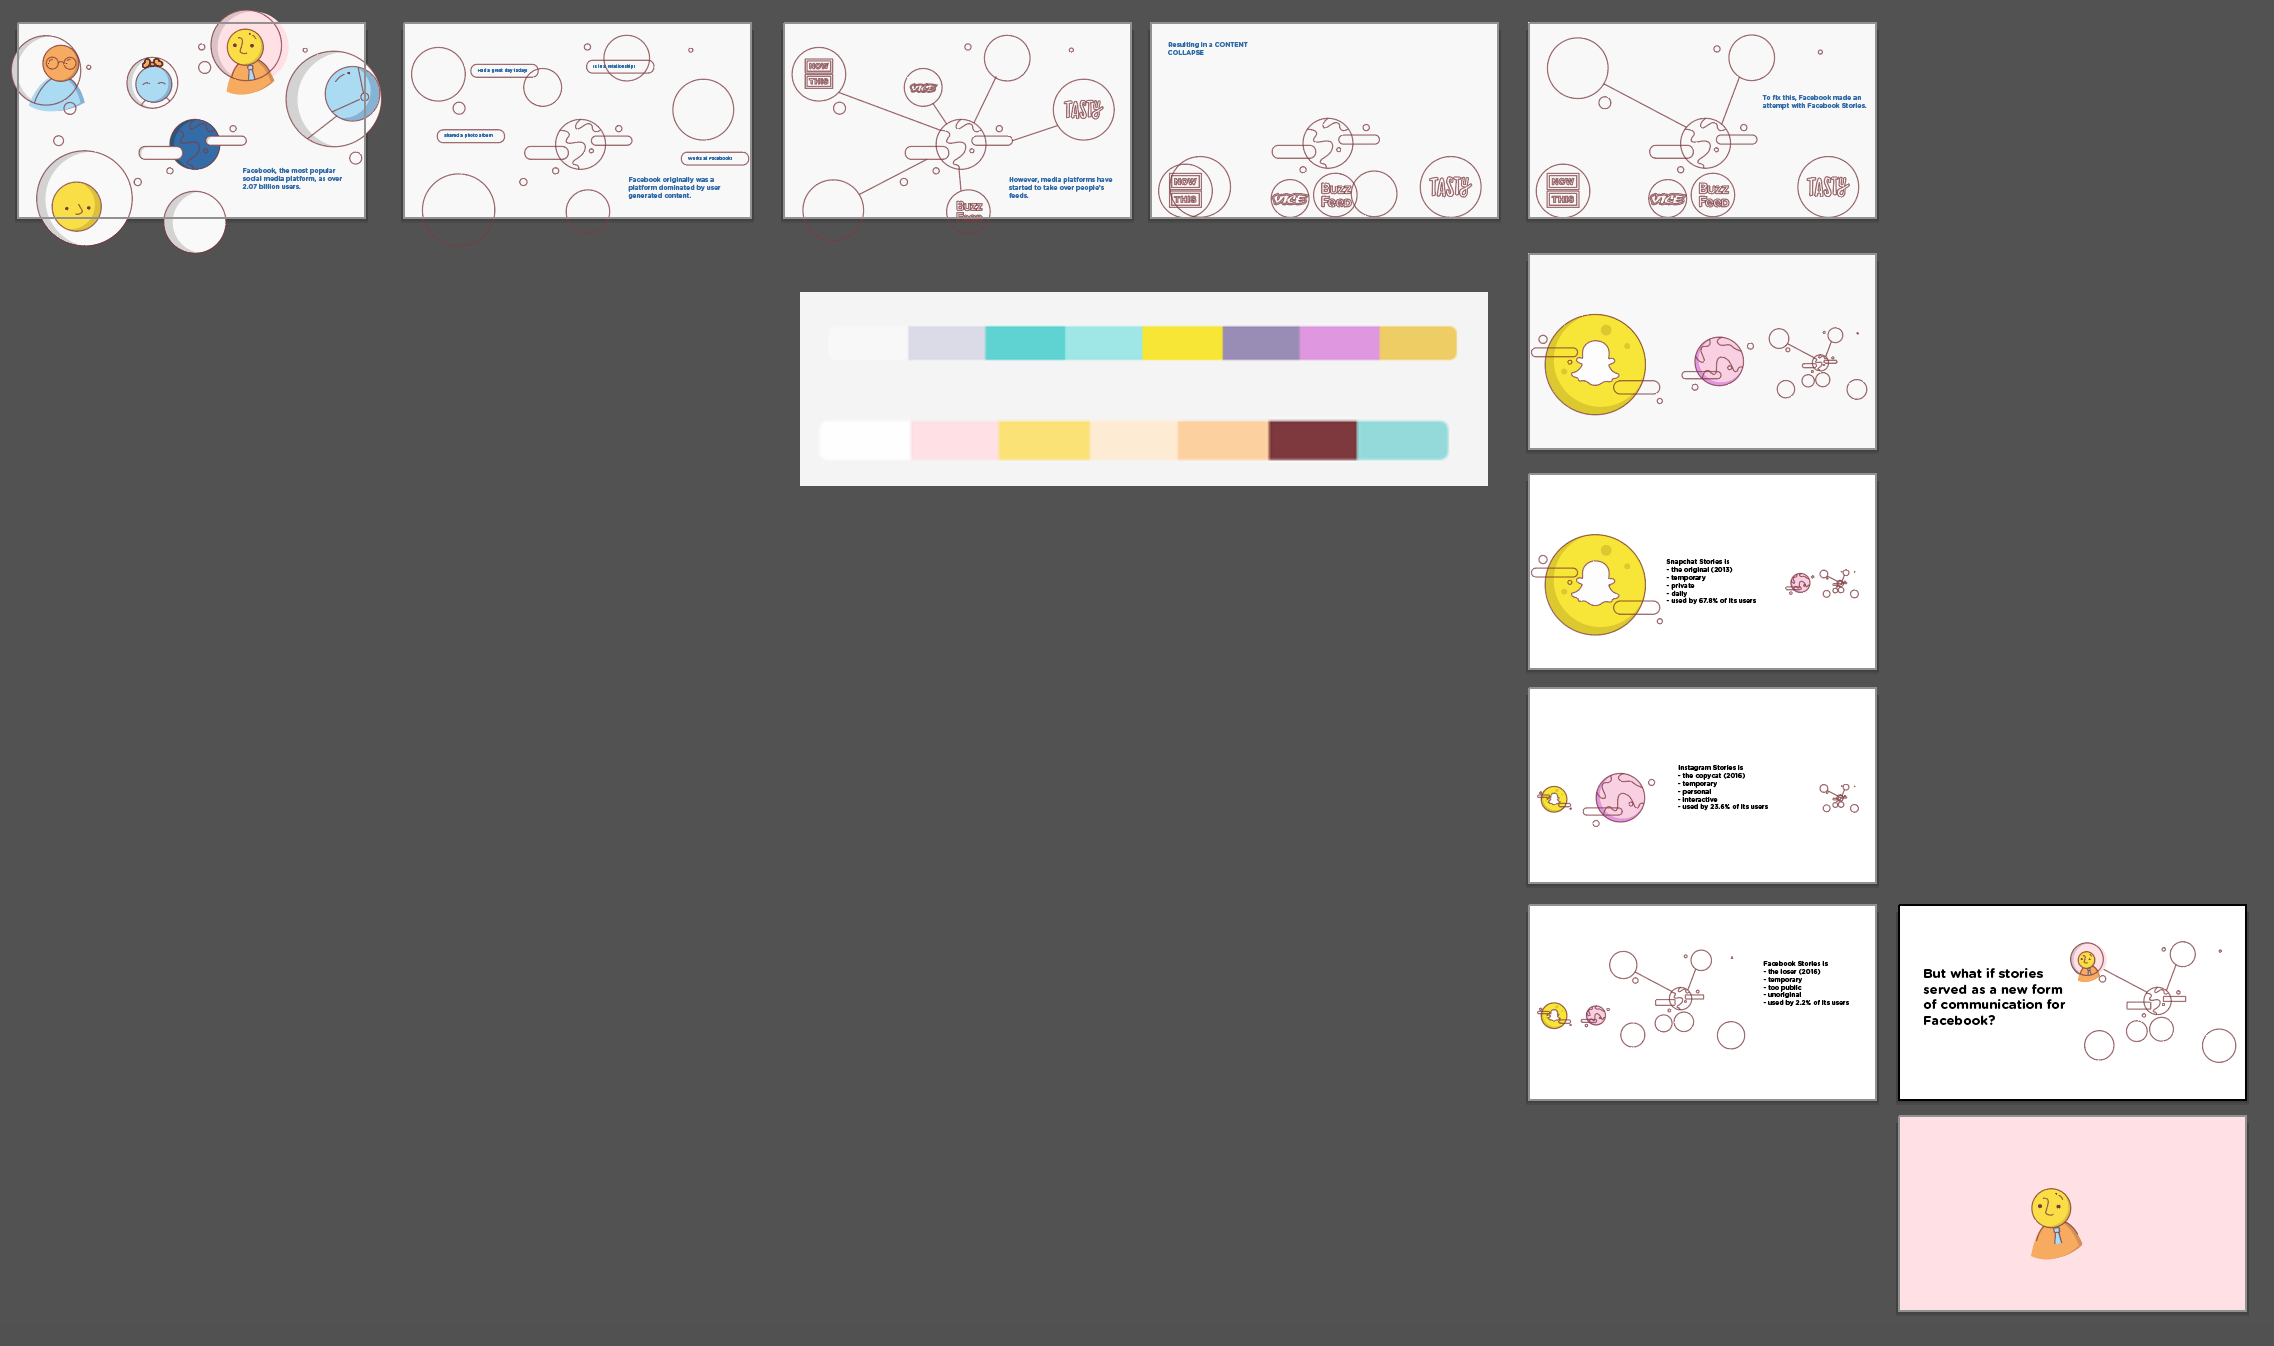 Second Storyboard with new visual style